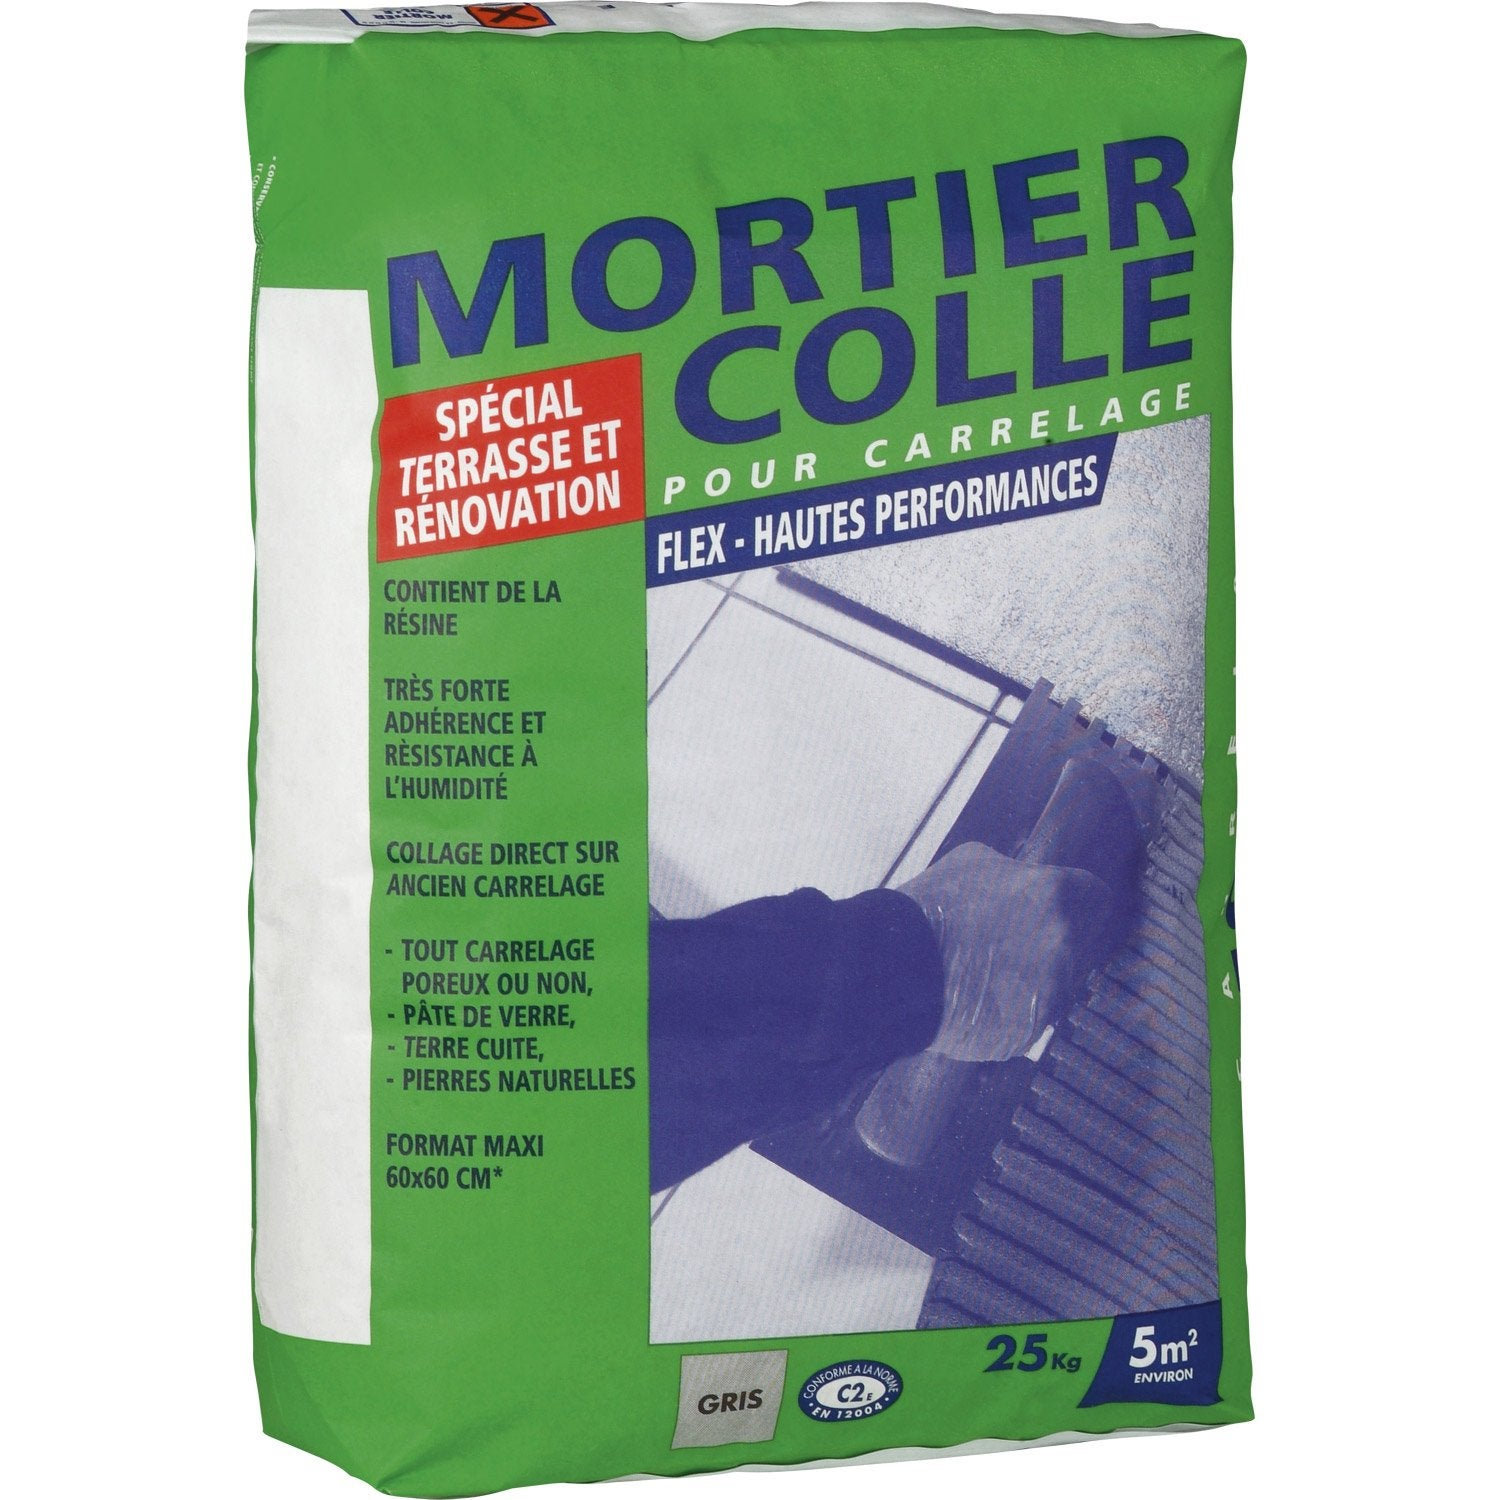 Mortier colle flex gris 25 kg leroy merlin for Carrelage sans colle leroy merlin